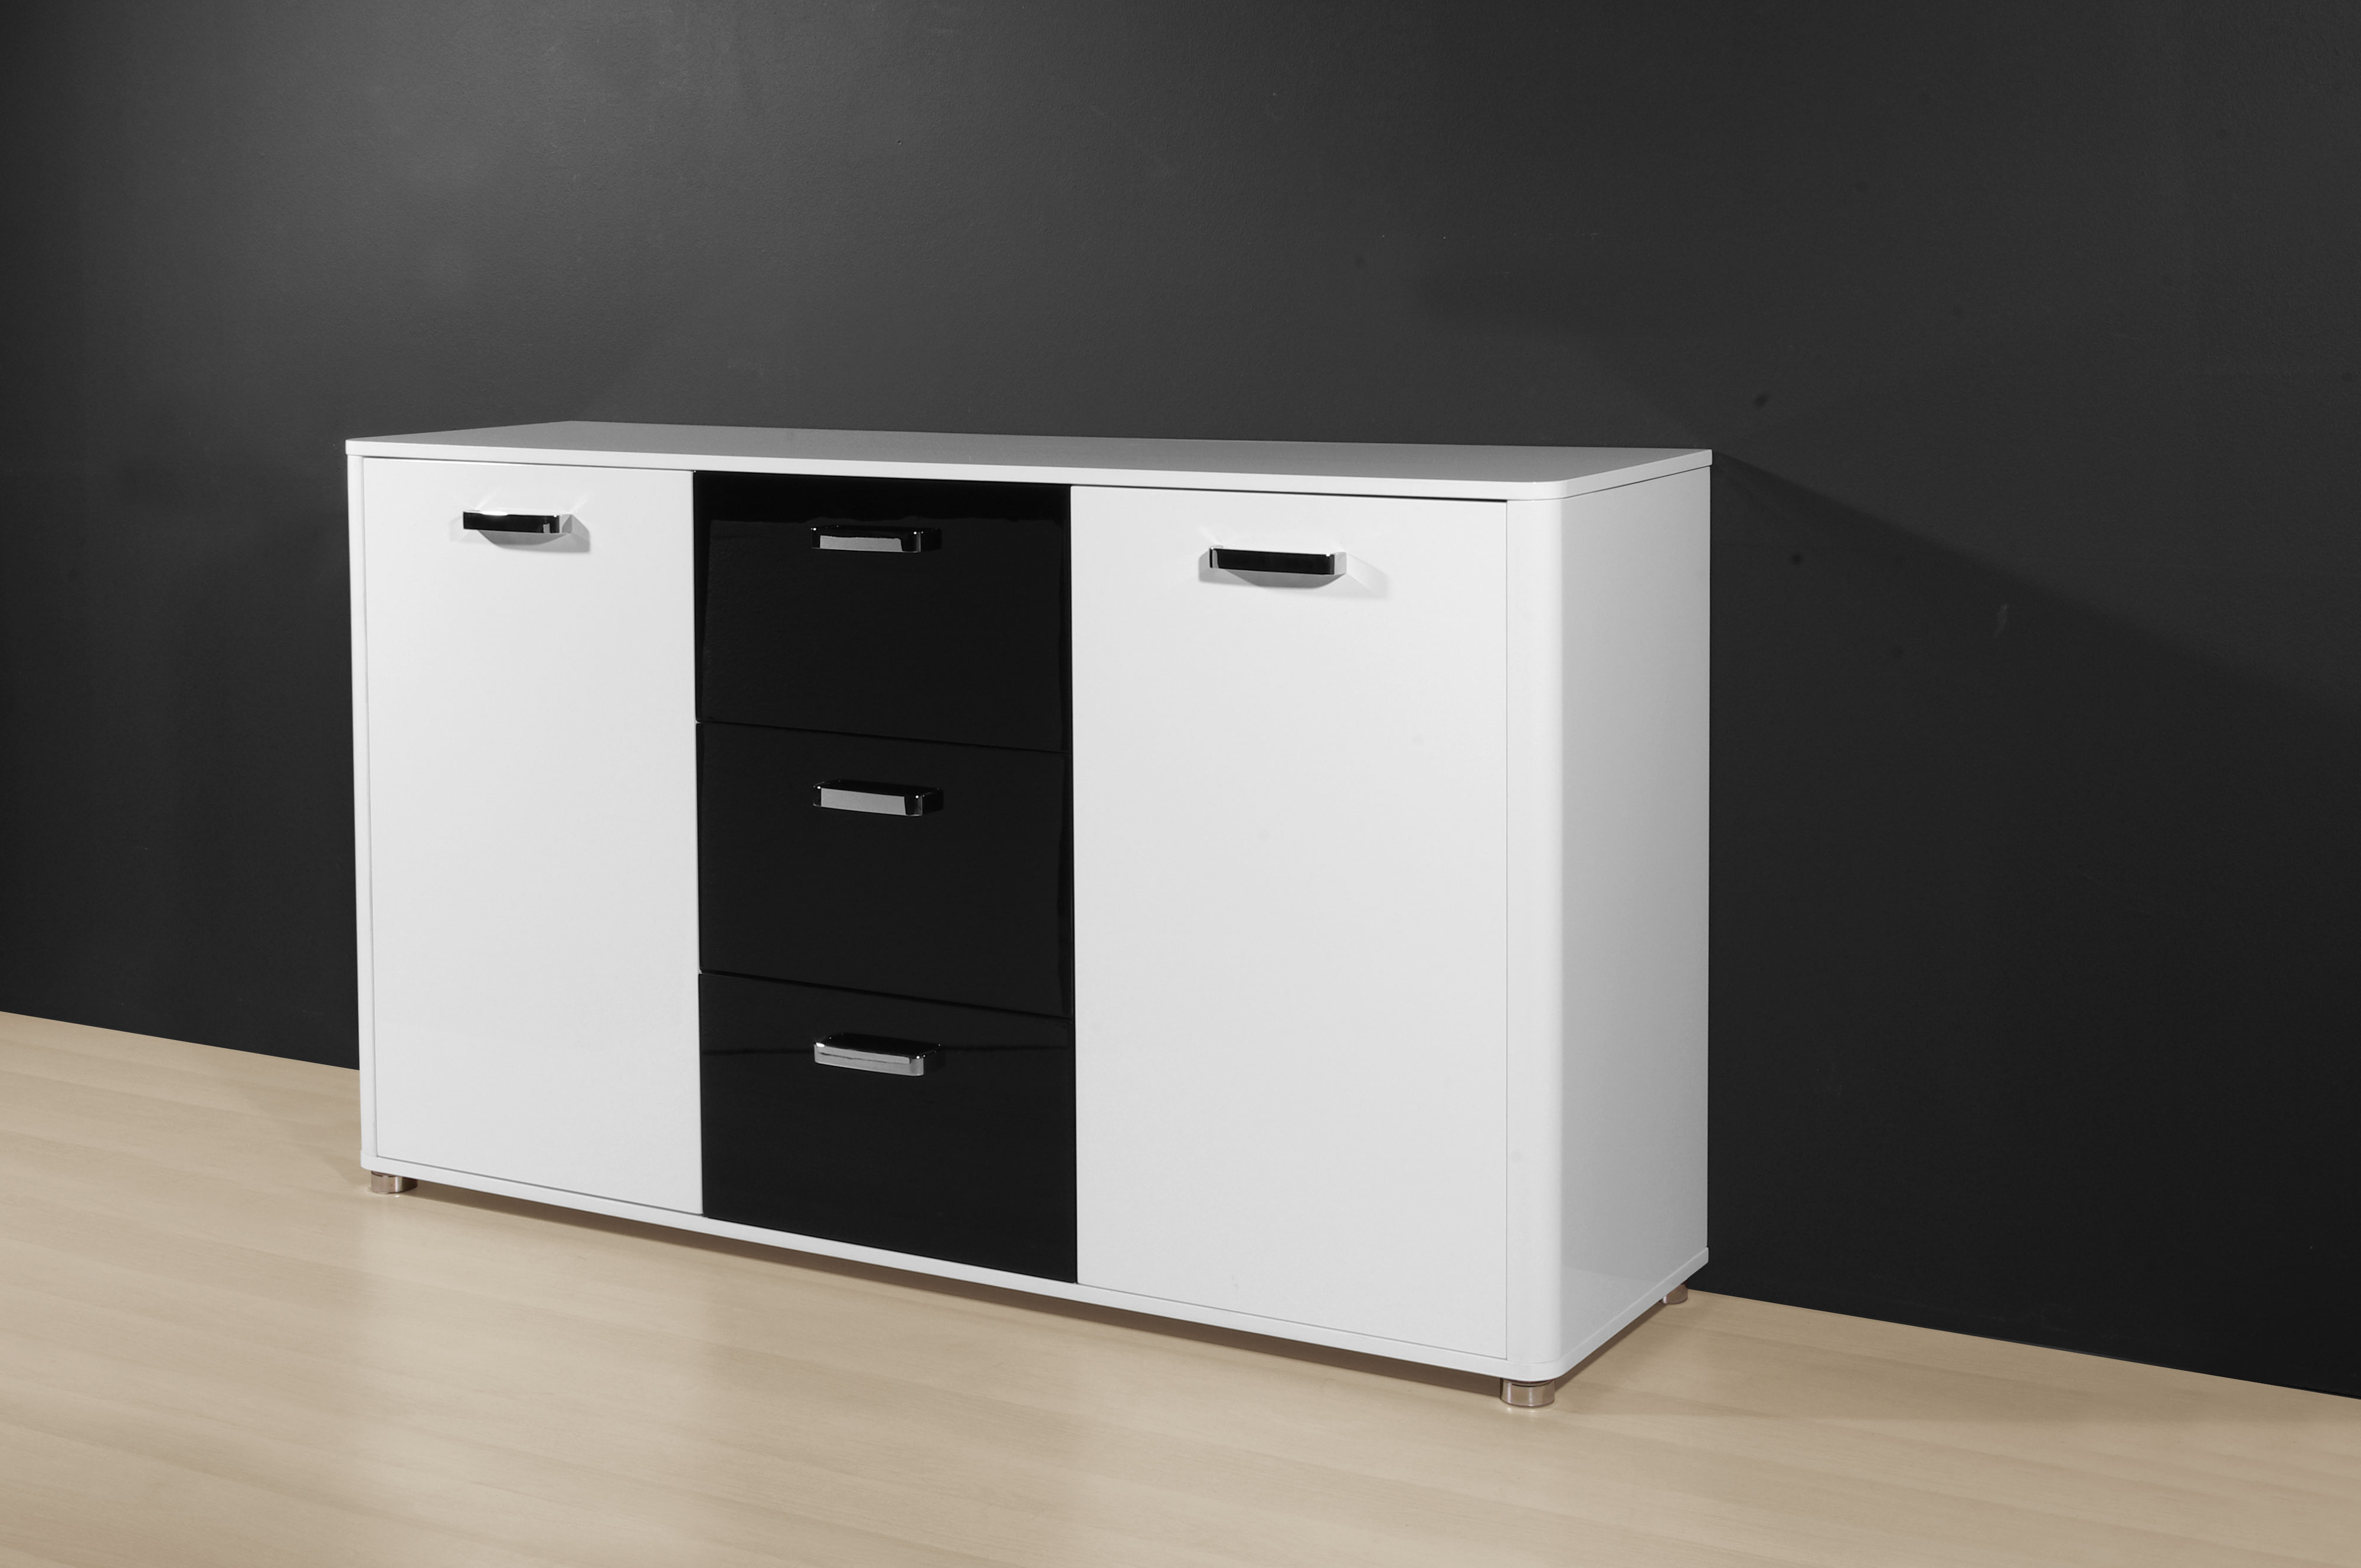 sideboard kommode flurkommode aktenschrank anrichte k596 weiss schwarz hochglanz ebay. Black Bedroom Furniture Sets. Home Design Ideas